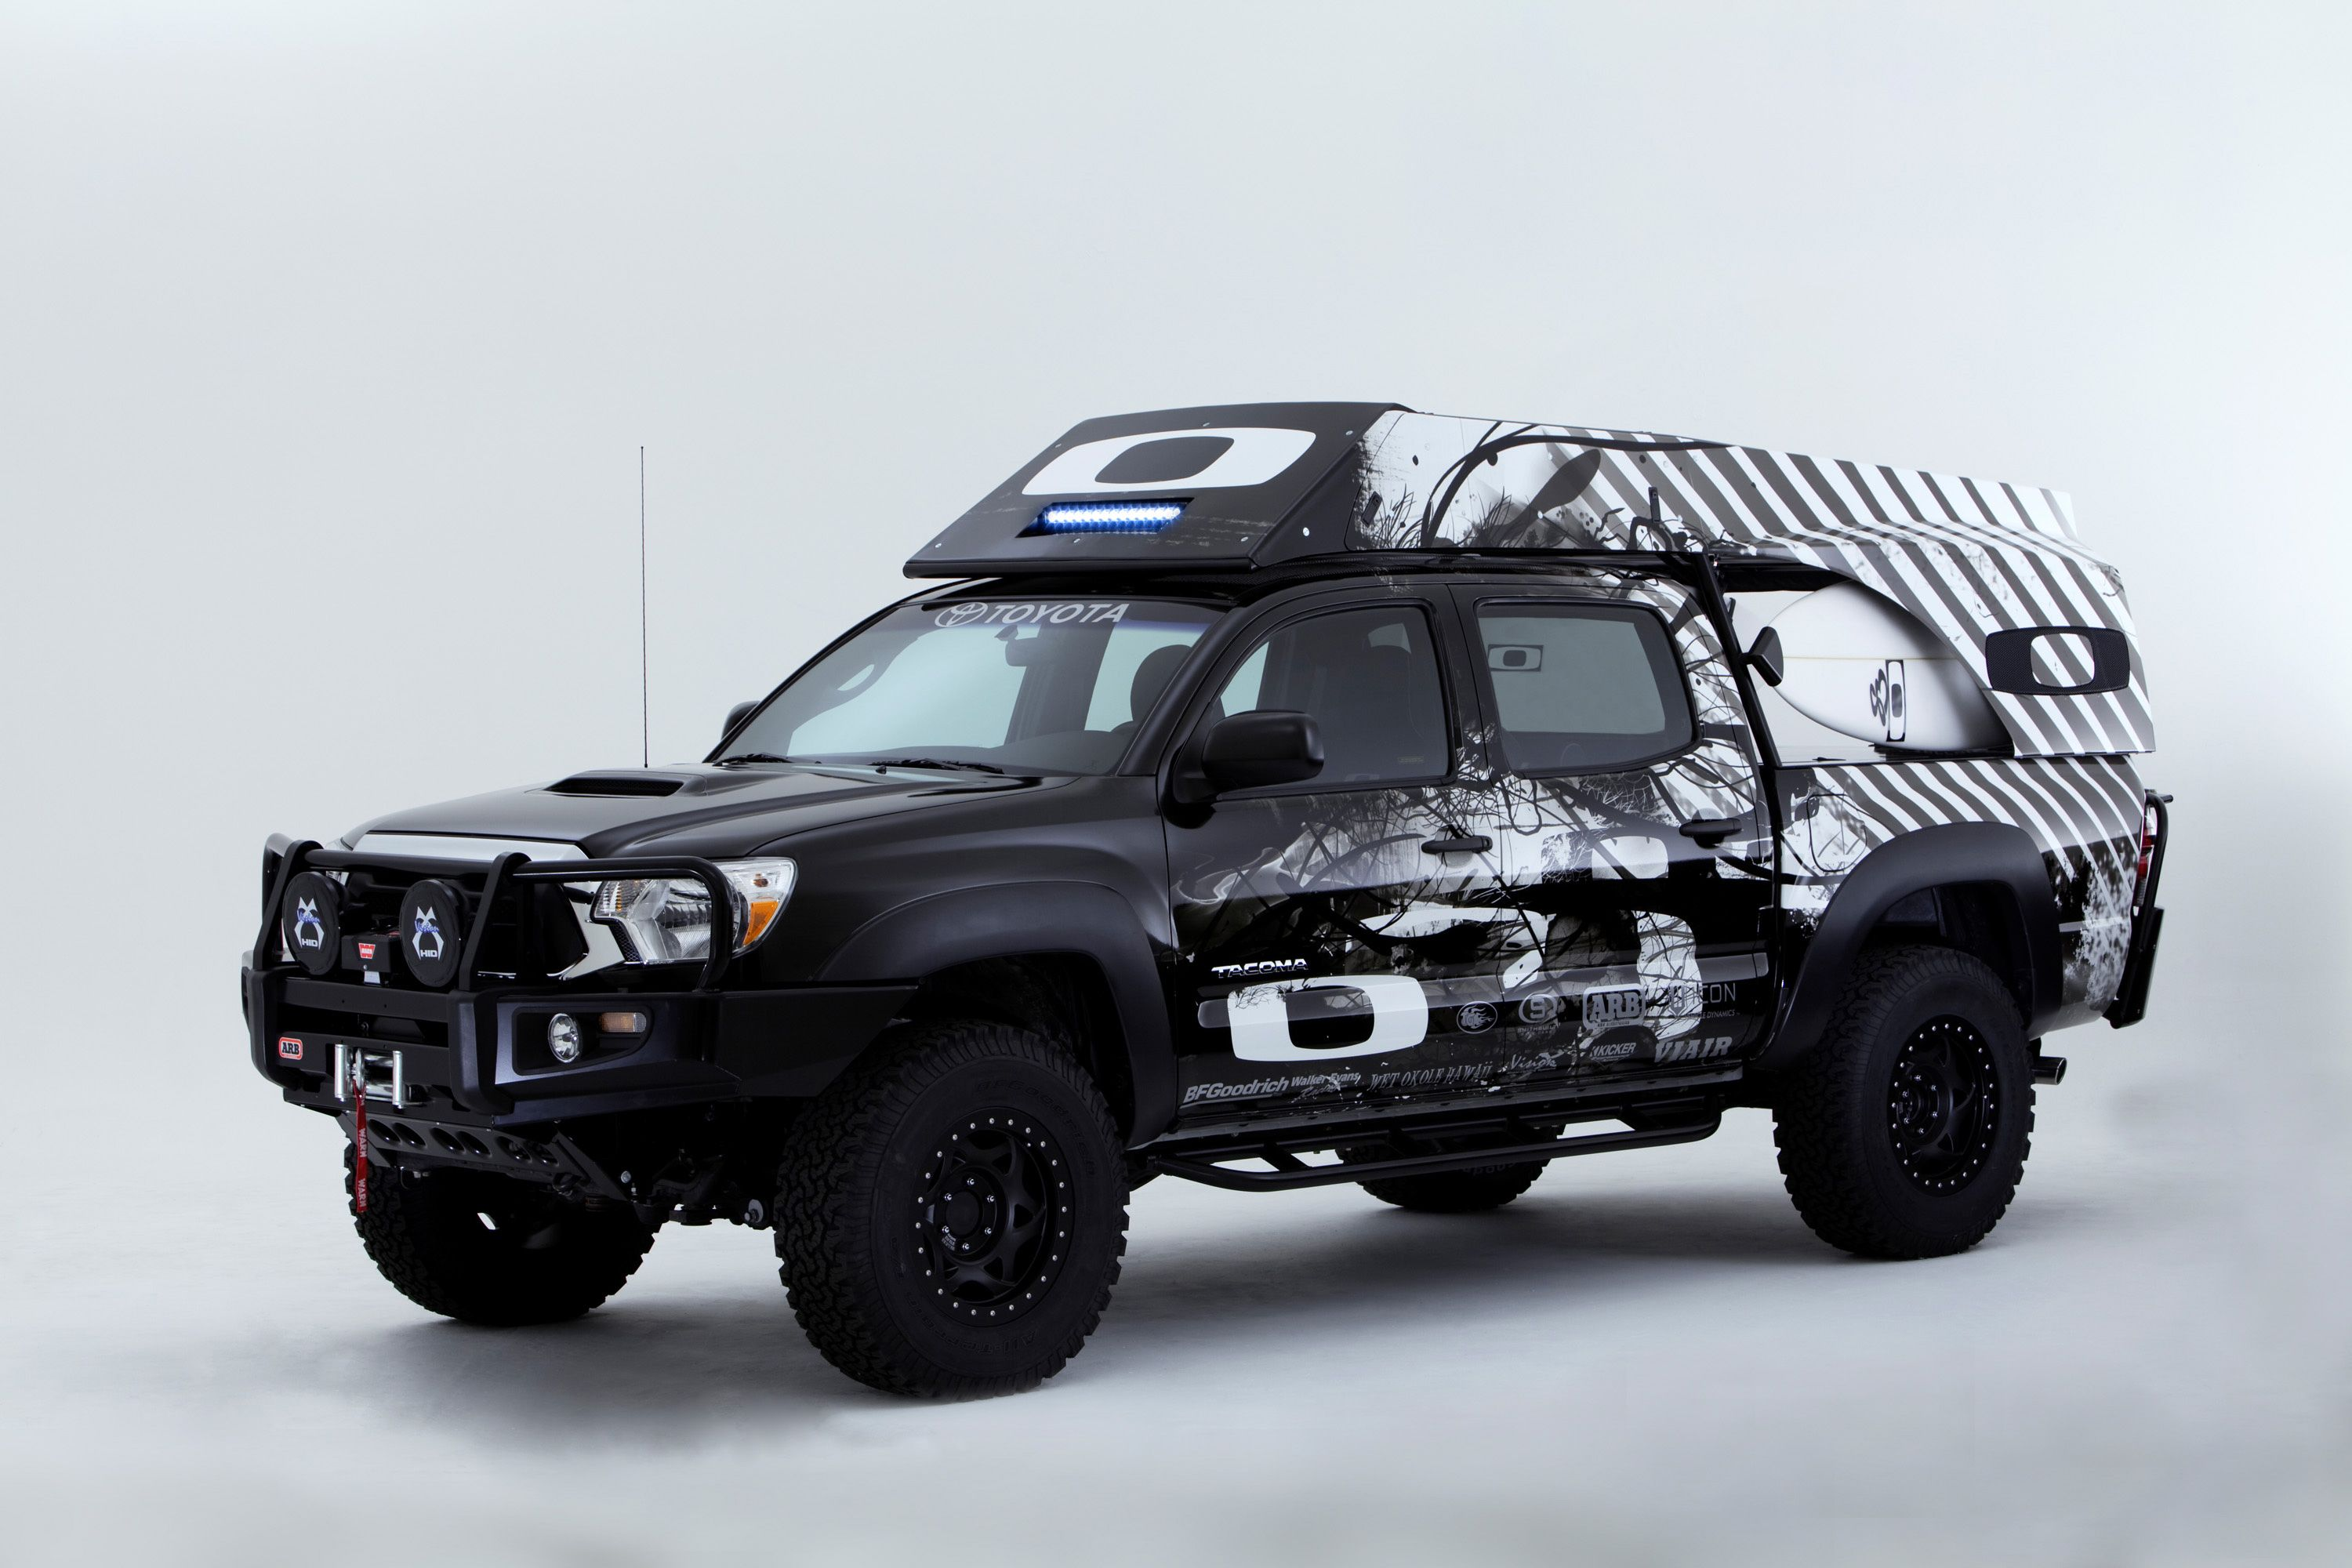 Built using a rugged Toyota 4x4 pickup equipped